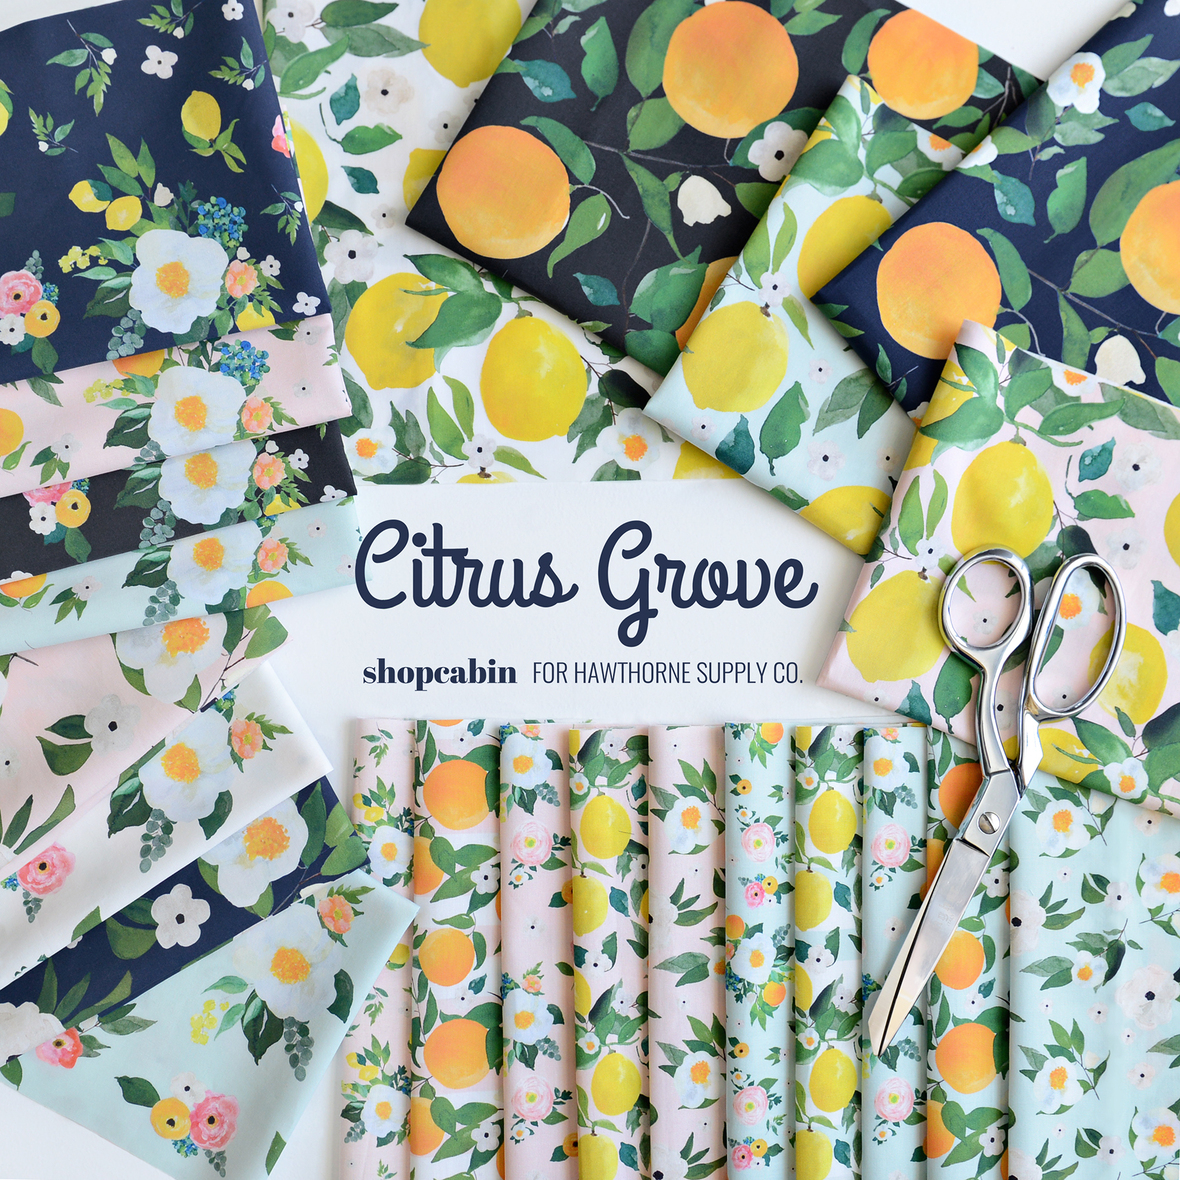 Shopcabin Citrus Grove Collection for Hawthorne Supply Co 1